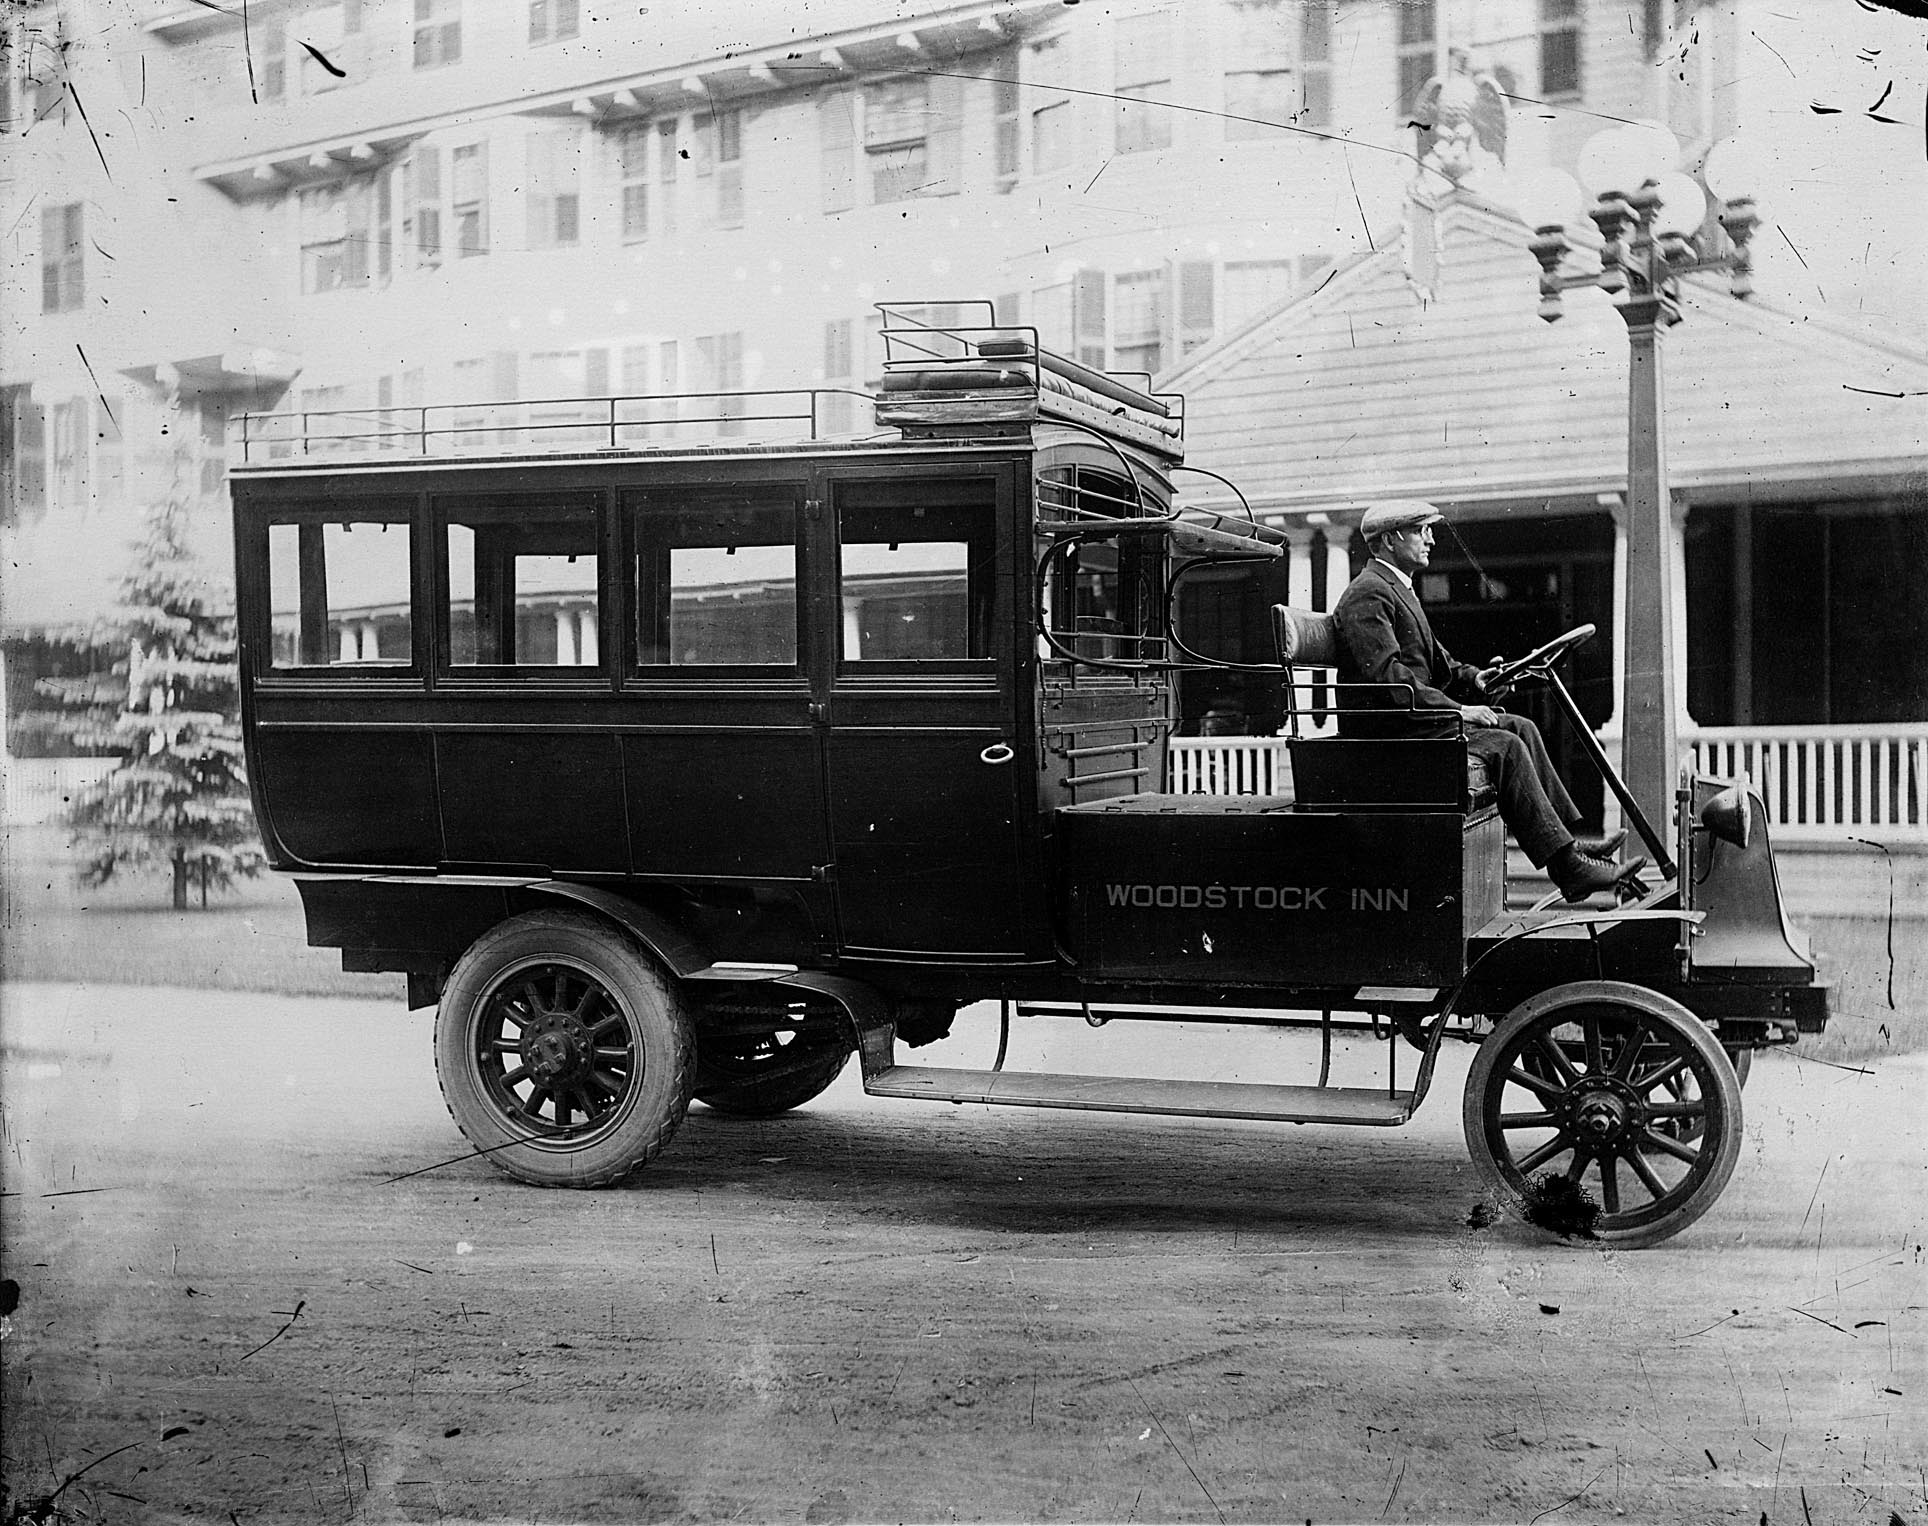 The Woodstock Inn Electric Bus - George Goodrow, Sr., Driver